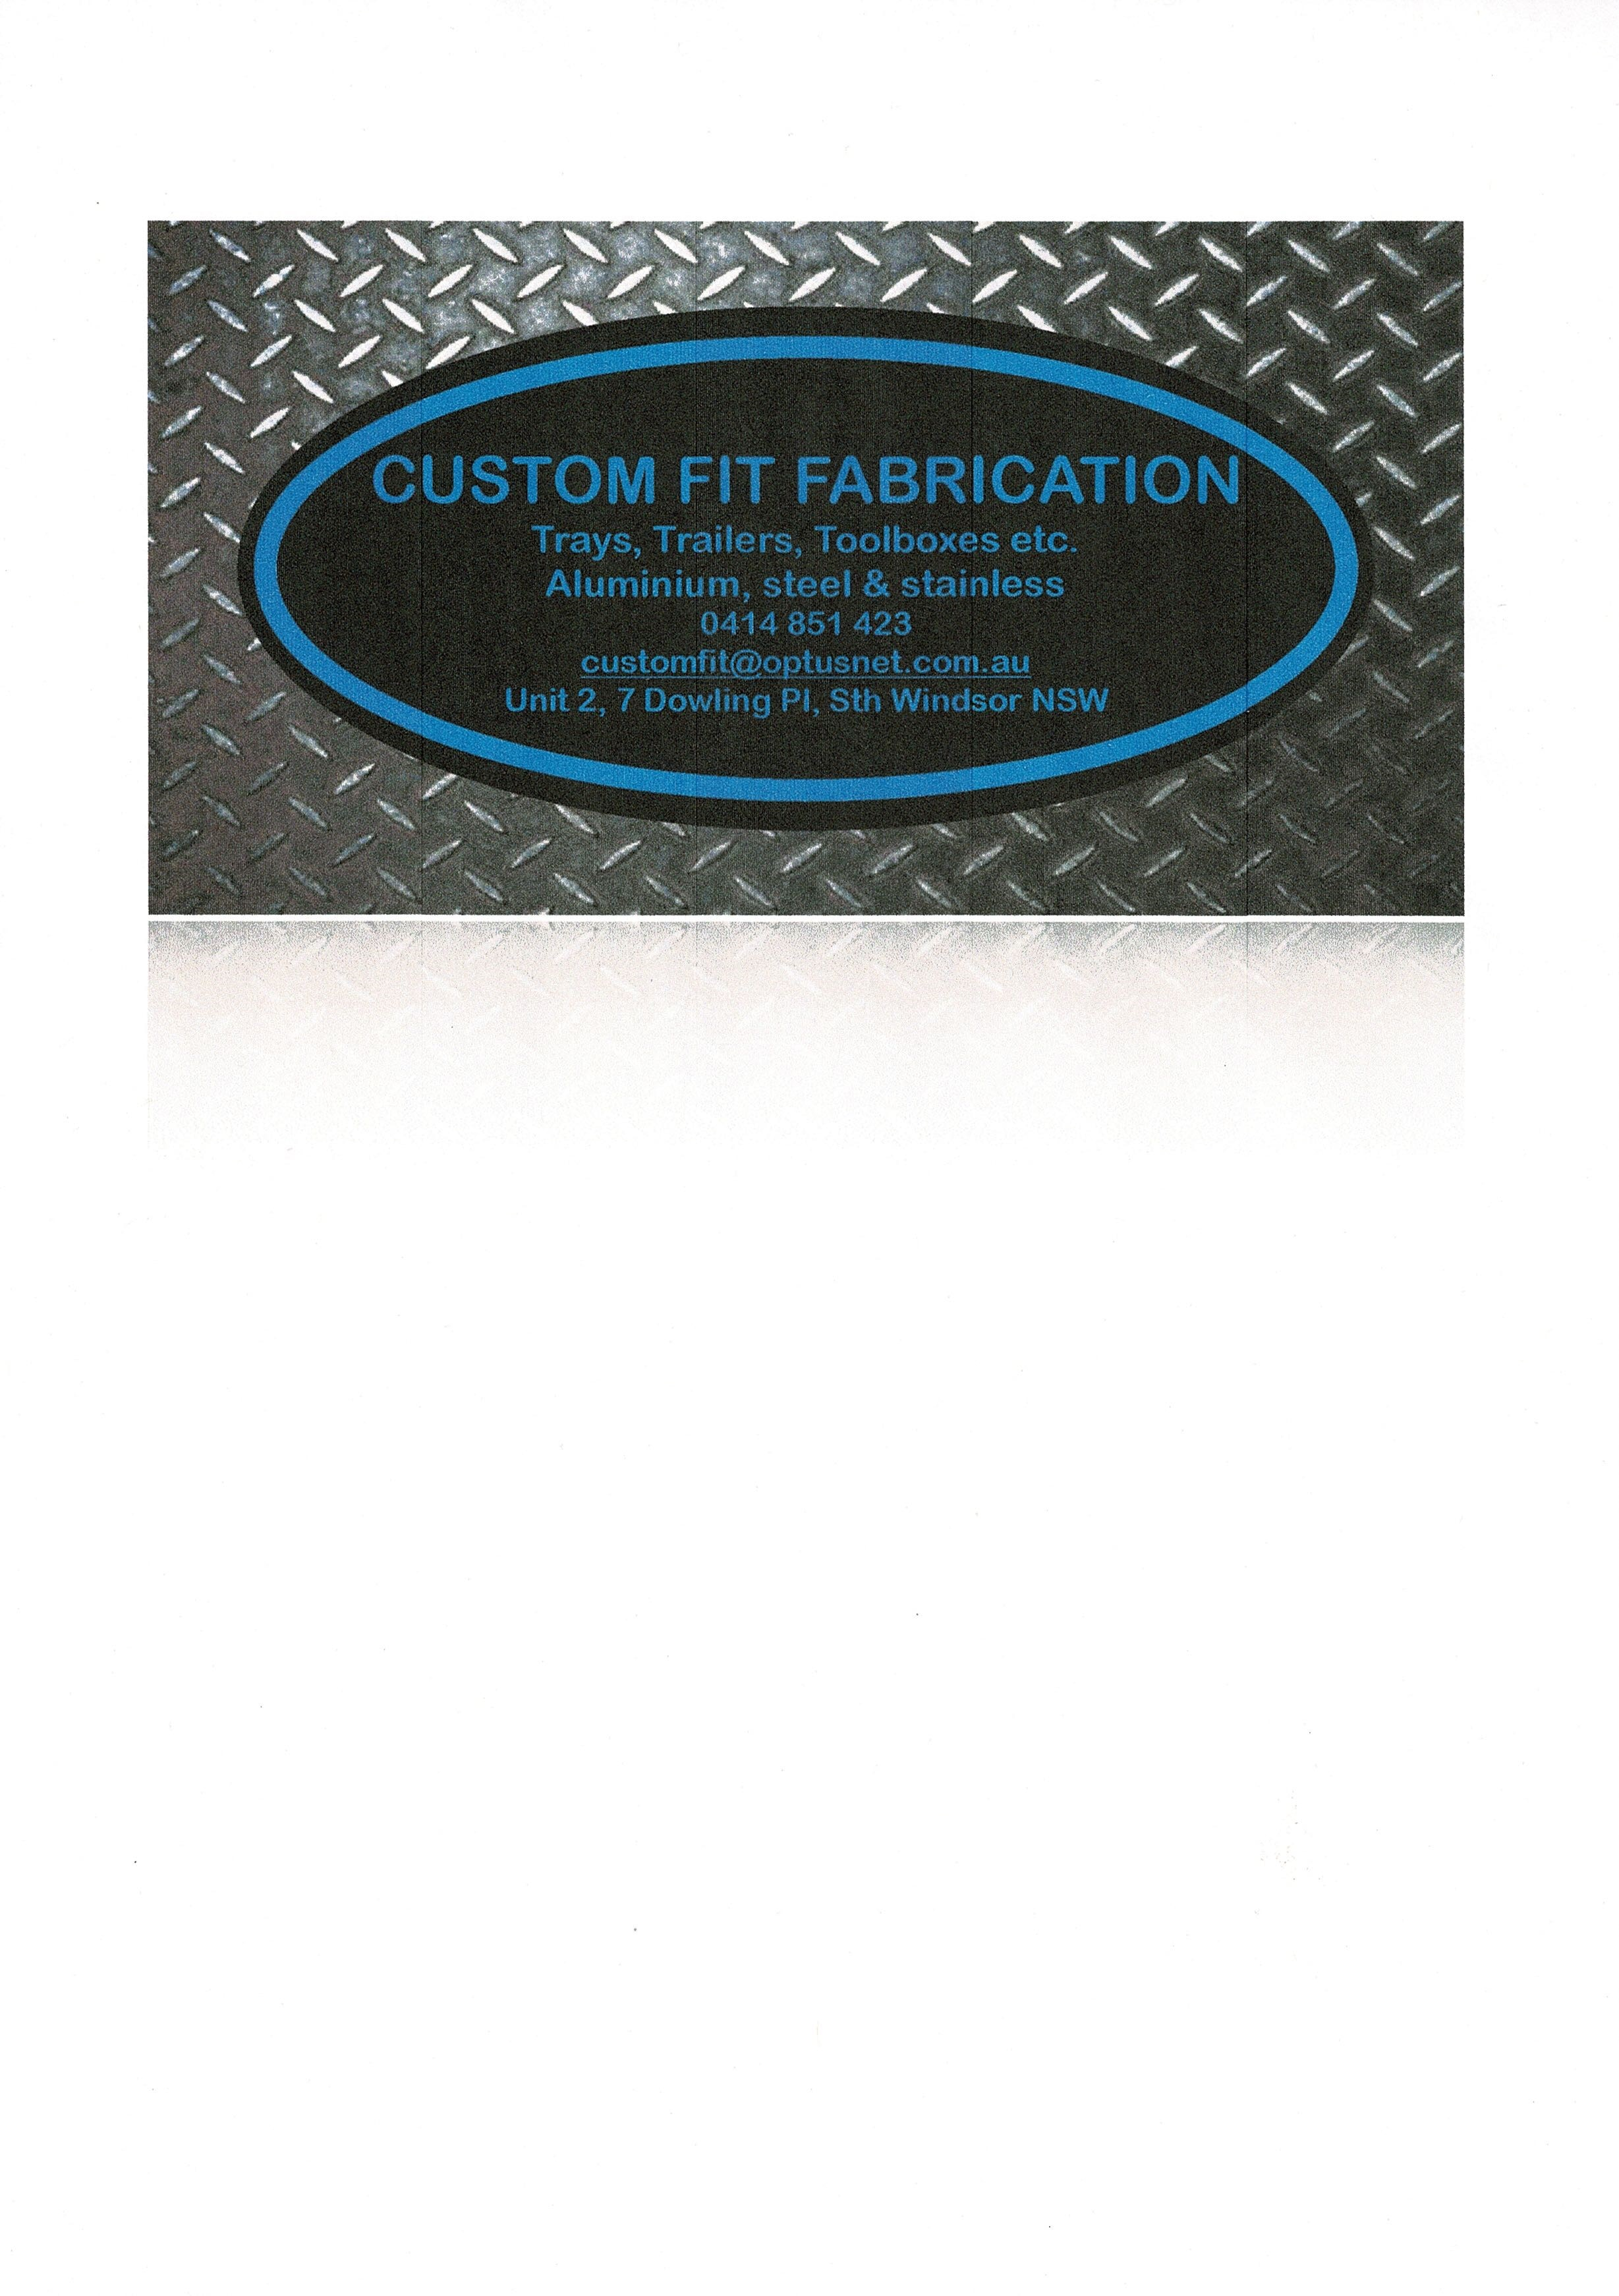 Custom Fit Fabrication - logo  sc 1 st  Yellow Pages & Here are the top 63 Motor u0026 Boat Canopy near South Windsor NSW ...